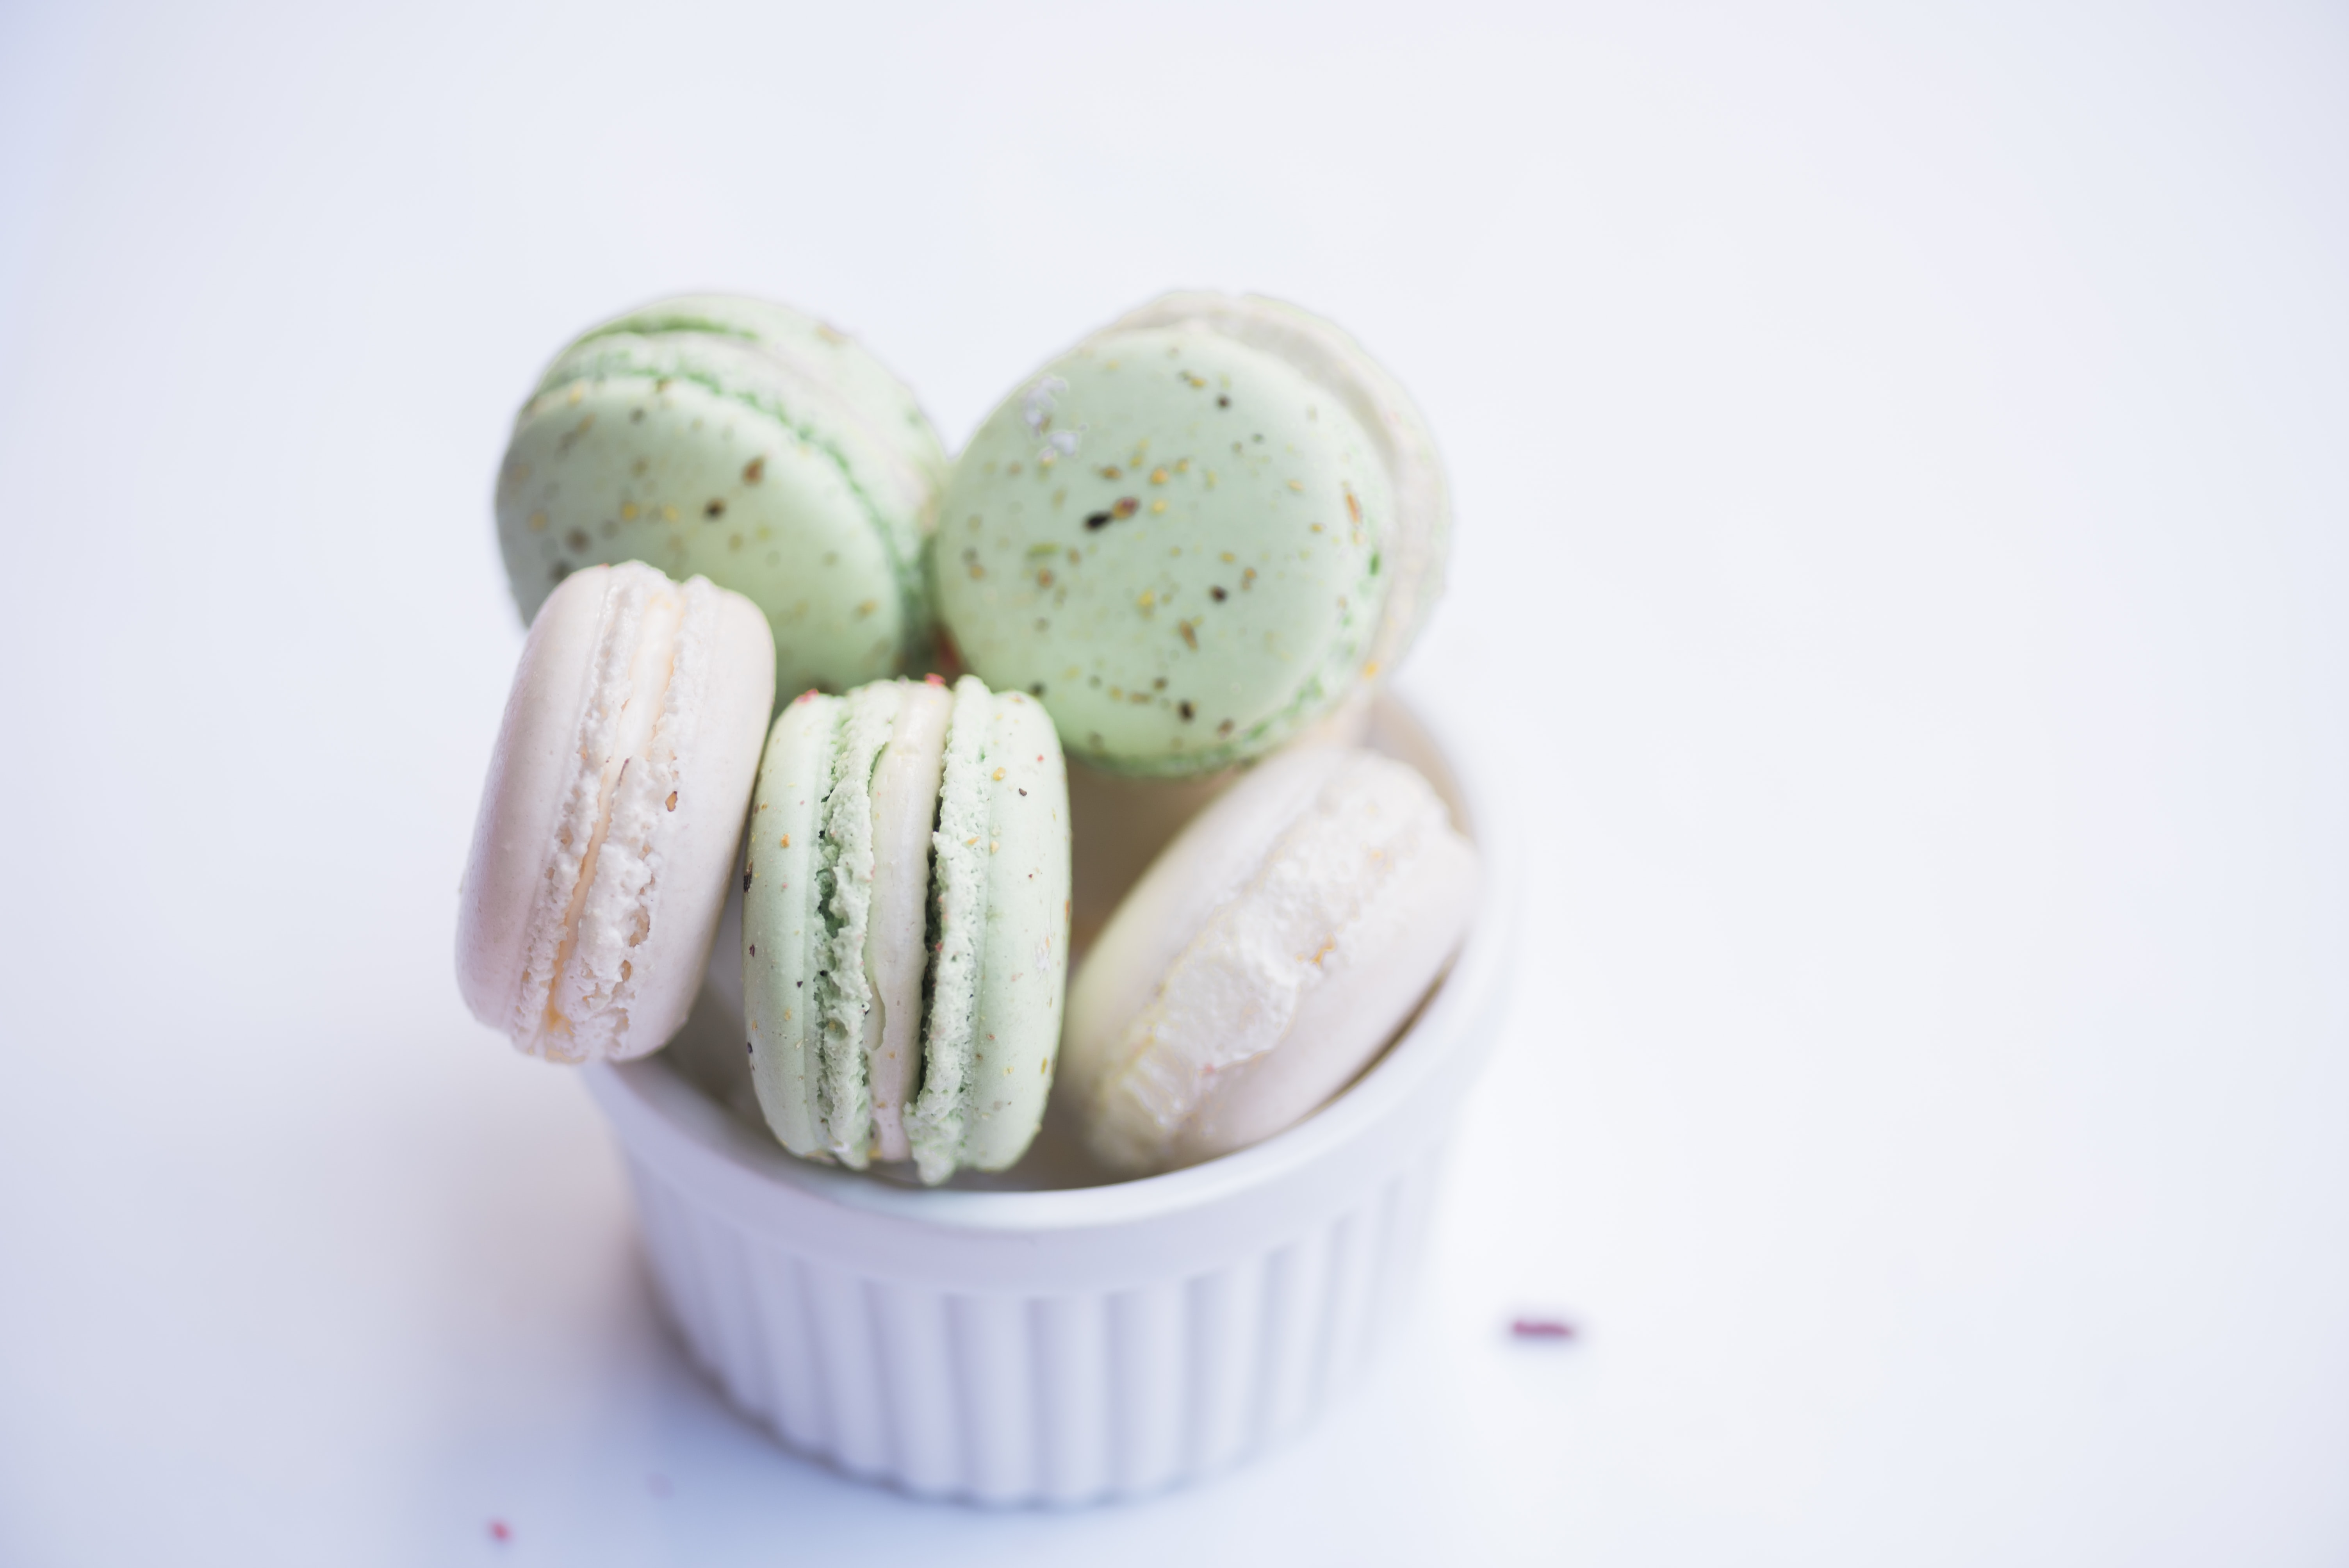 Colorful macaroons in a small white bowl on a white surface